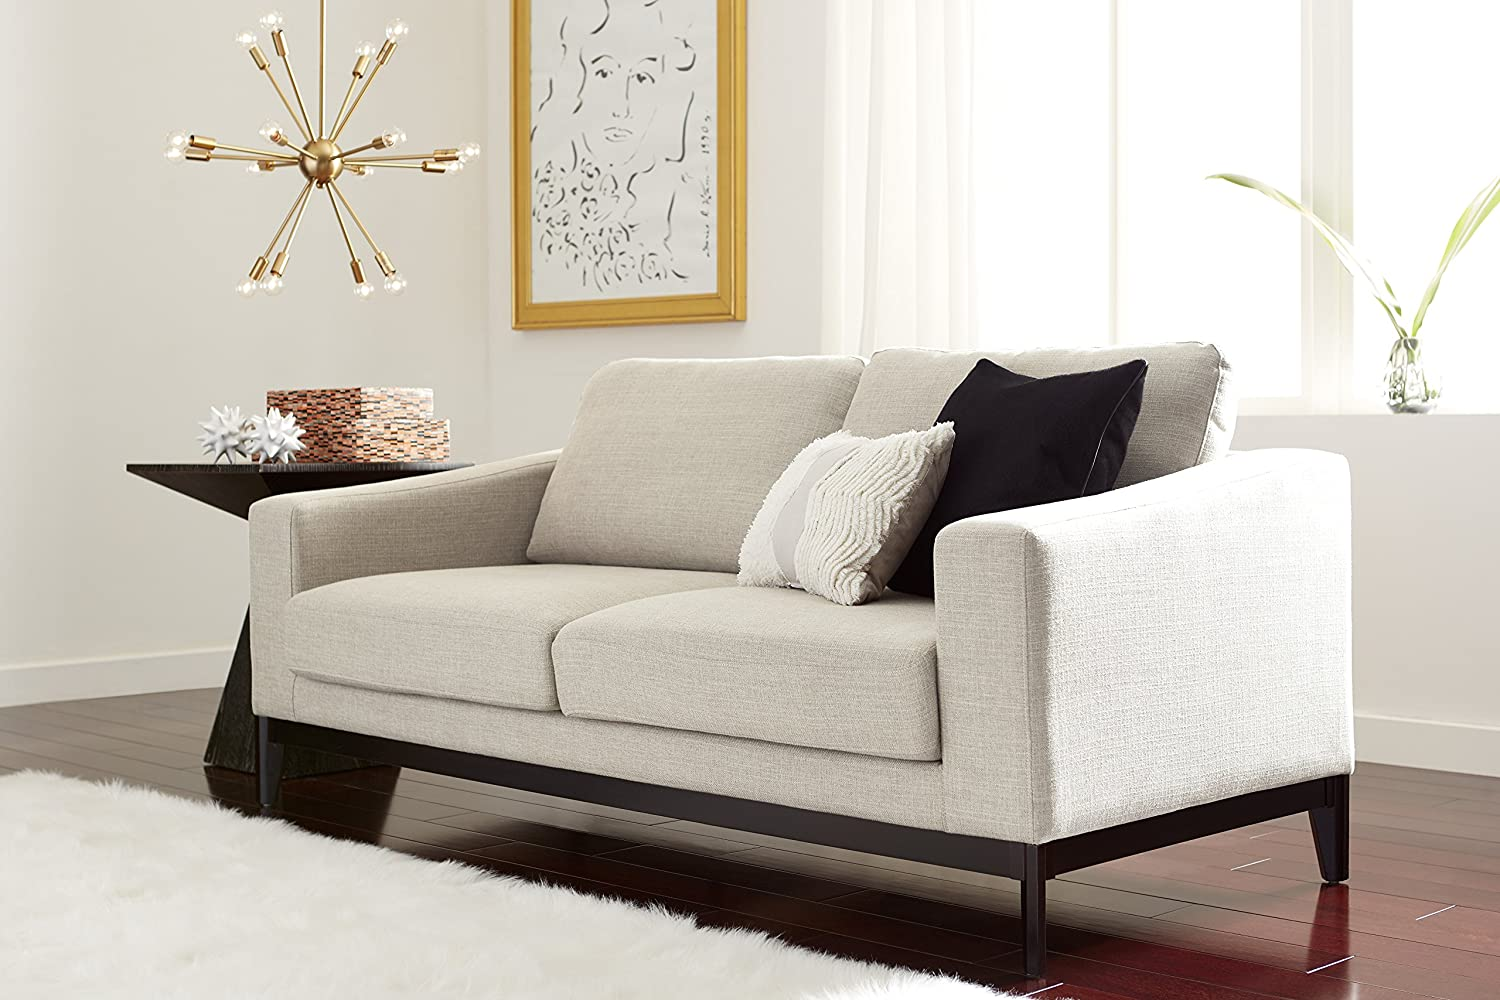 Elle Decor Olivia Sofa, Chenille, Cream